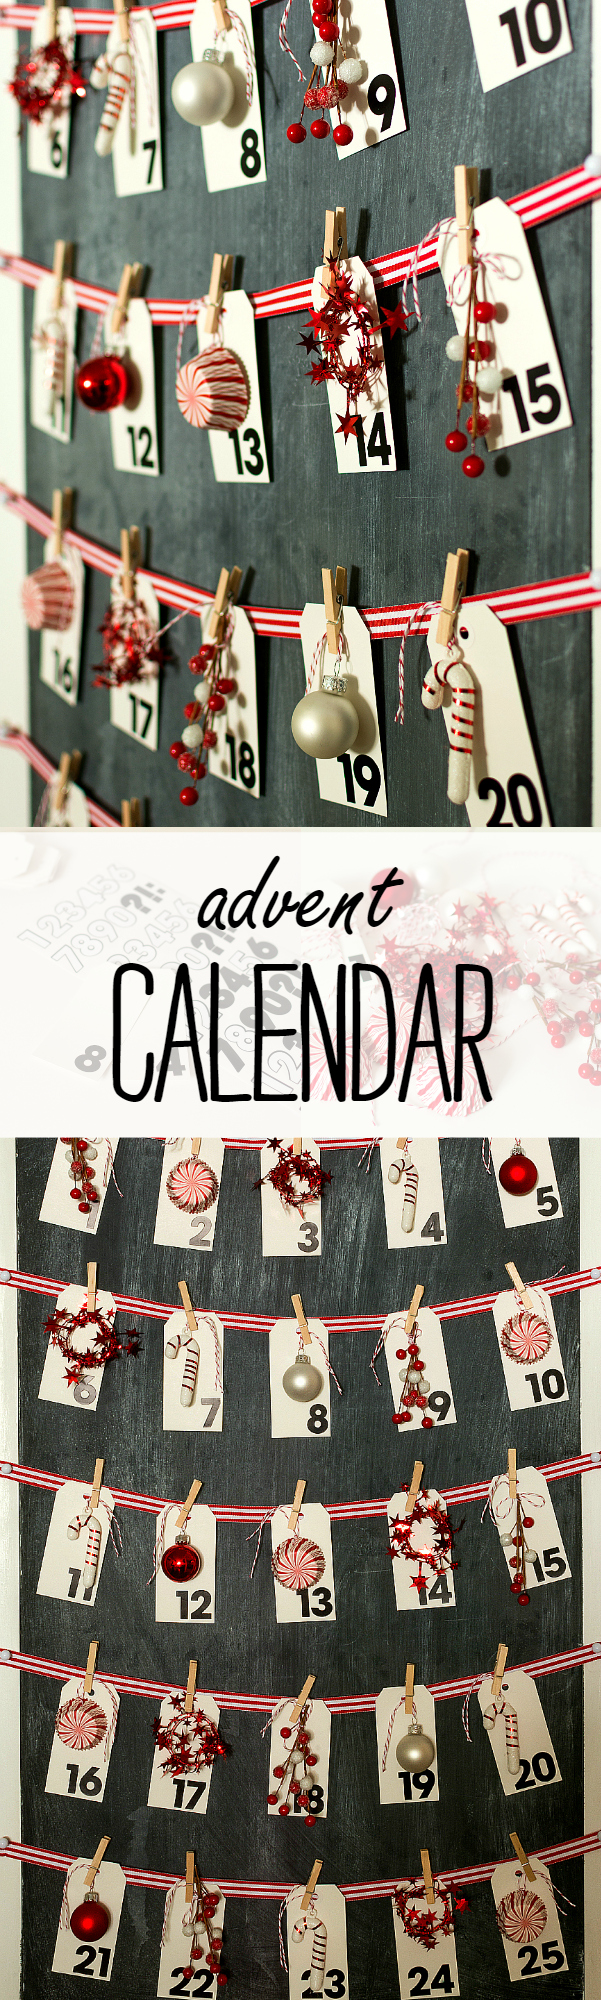 Christmas Craft Ideas: Advent Calendar Make Your Own